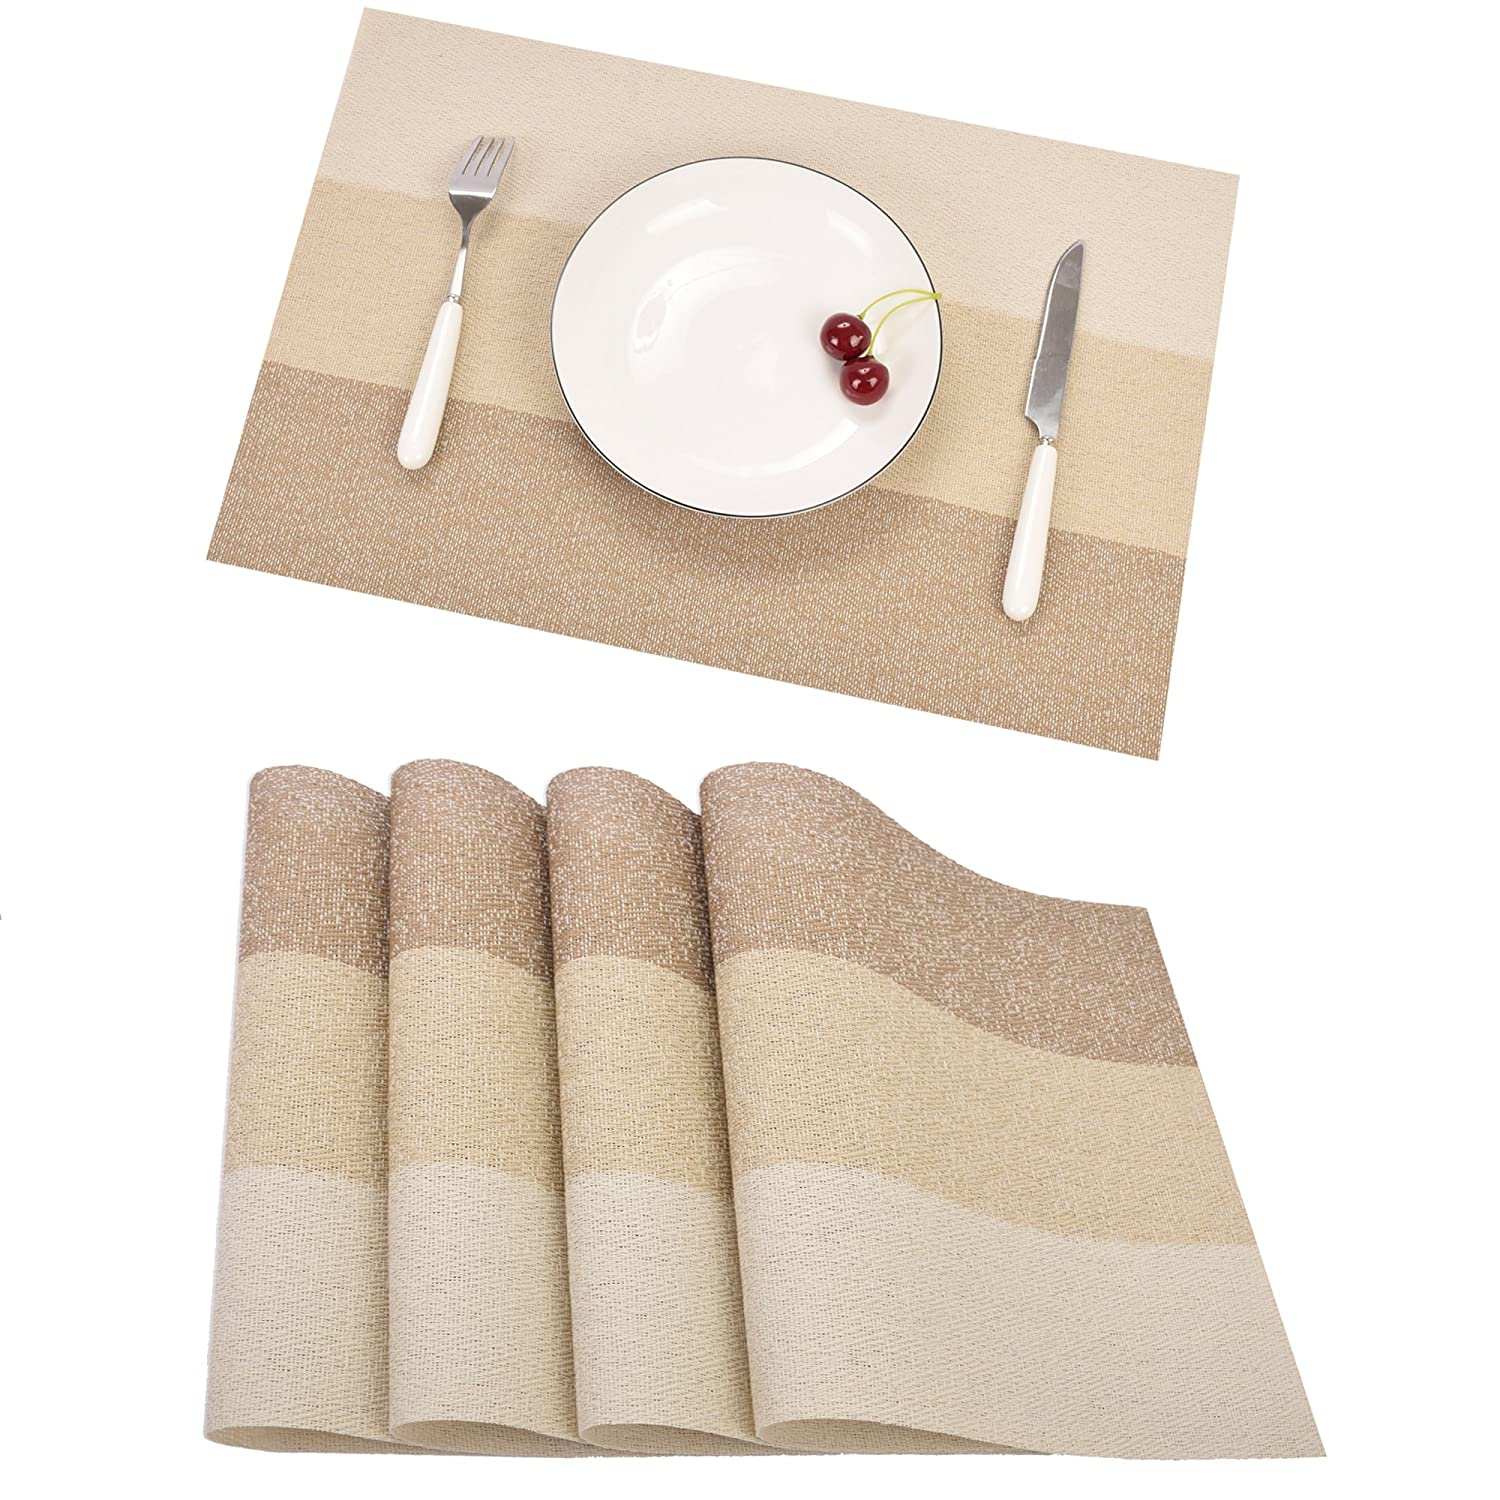 Placemats Famibay Place Mats Set of 6 for Table Washable Fabric Table Mats for Kitchen Non Slip (6, Blue)